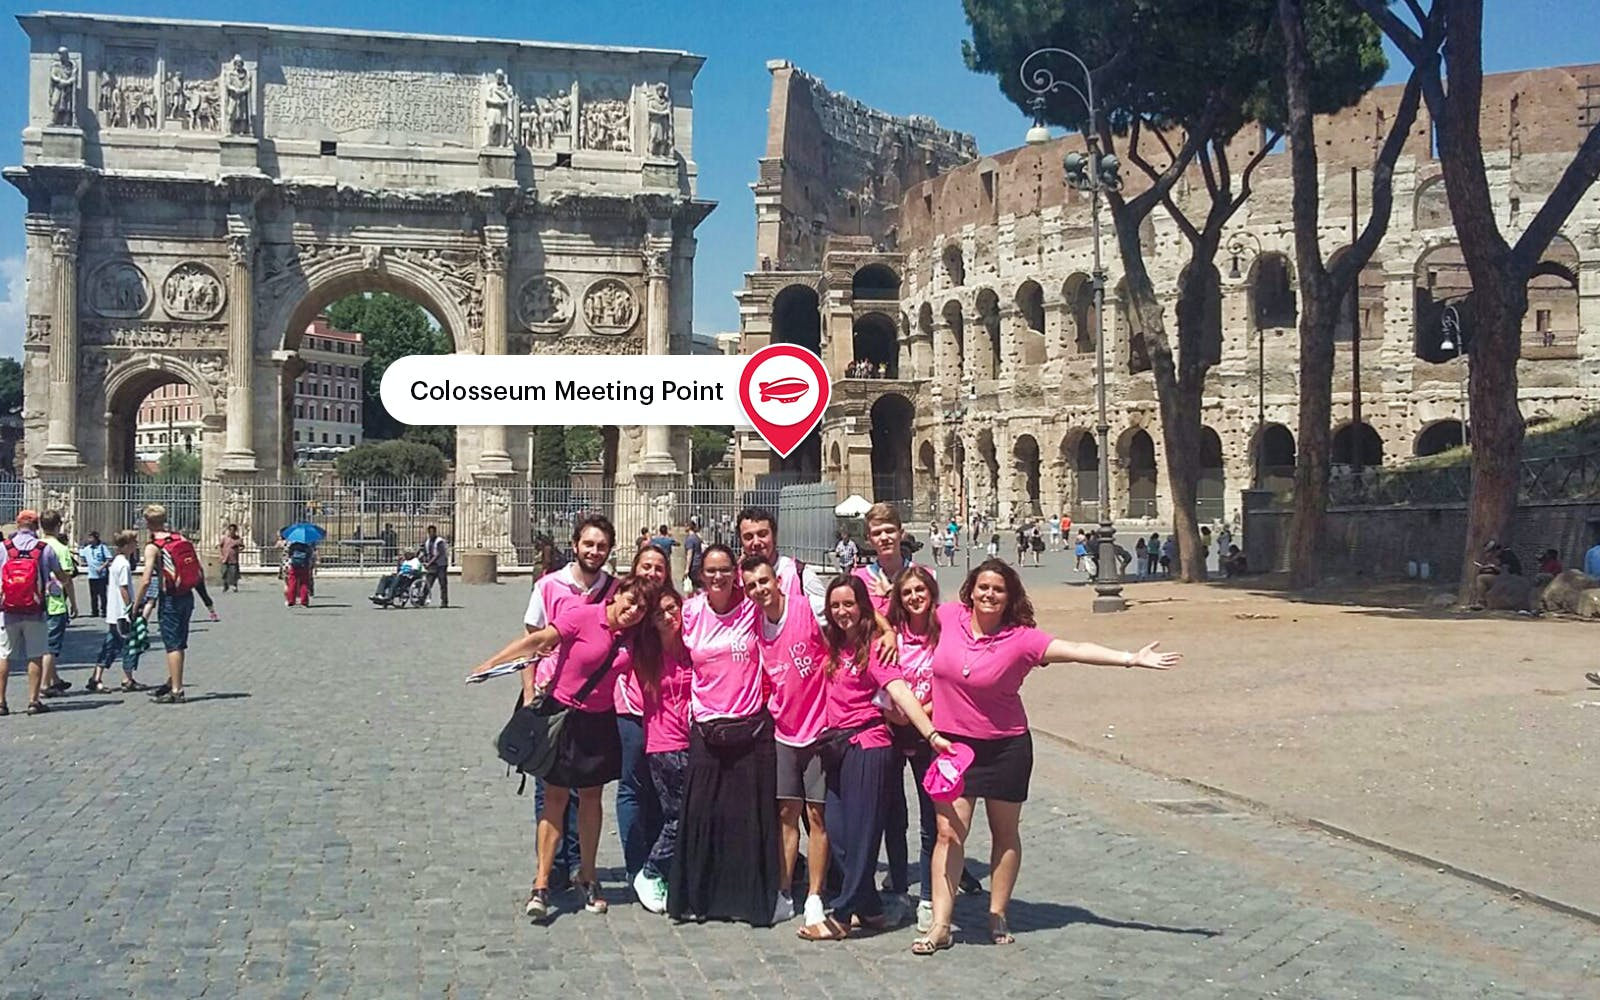 borghese gallery & colosseum half day guided tour with roman forum-4